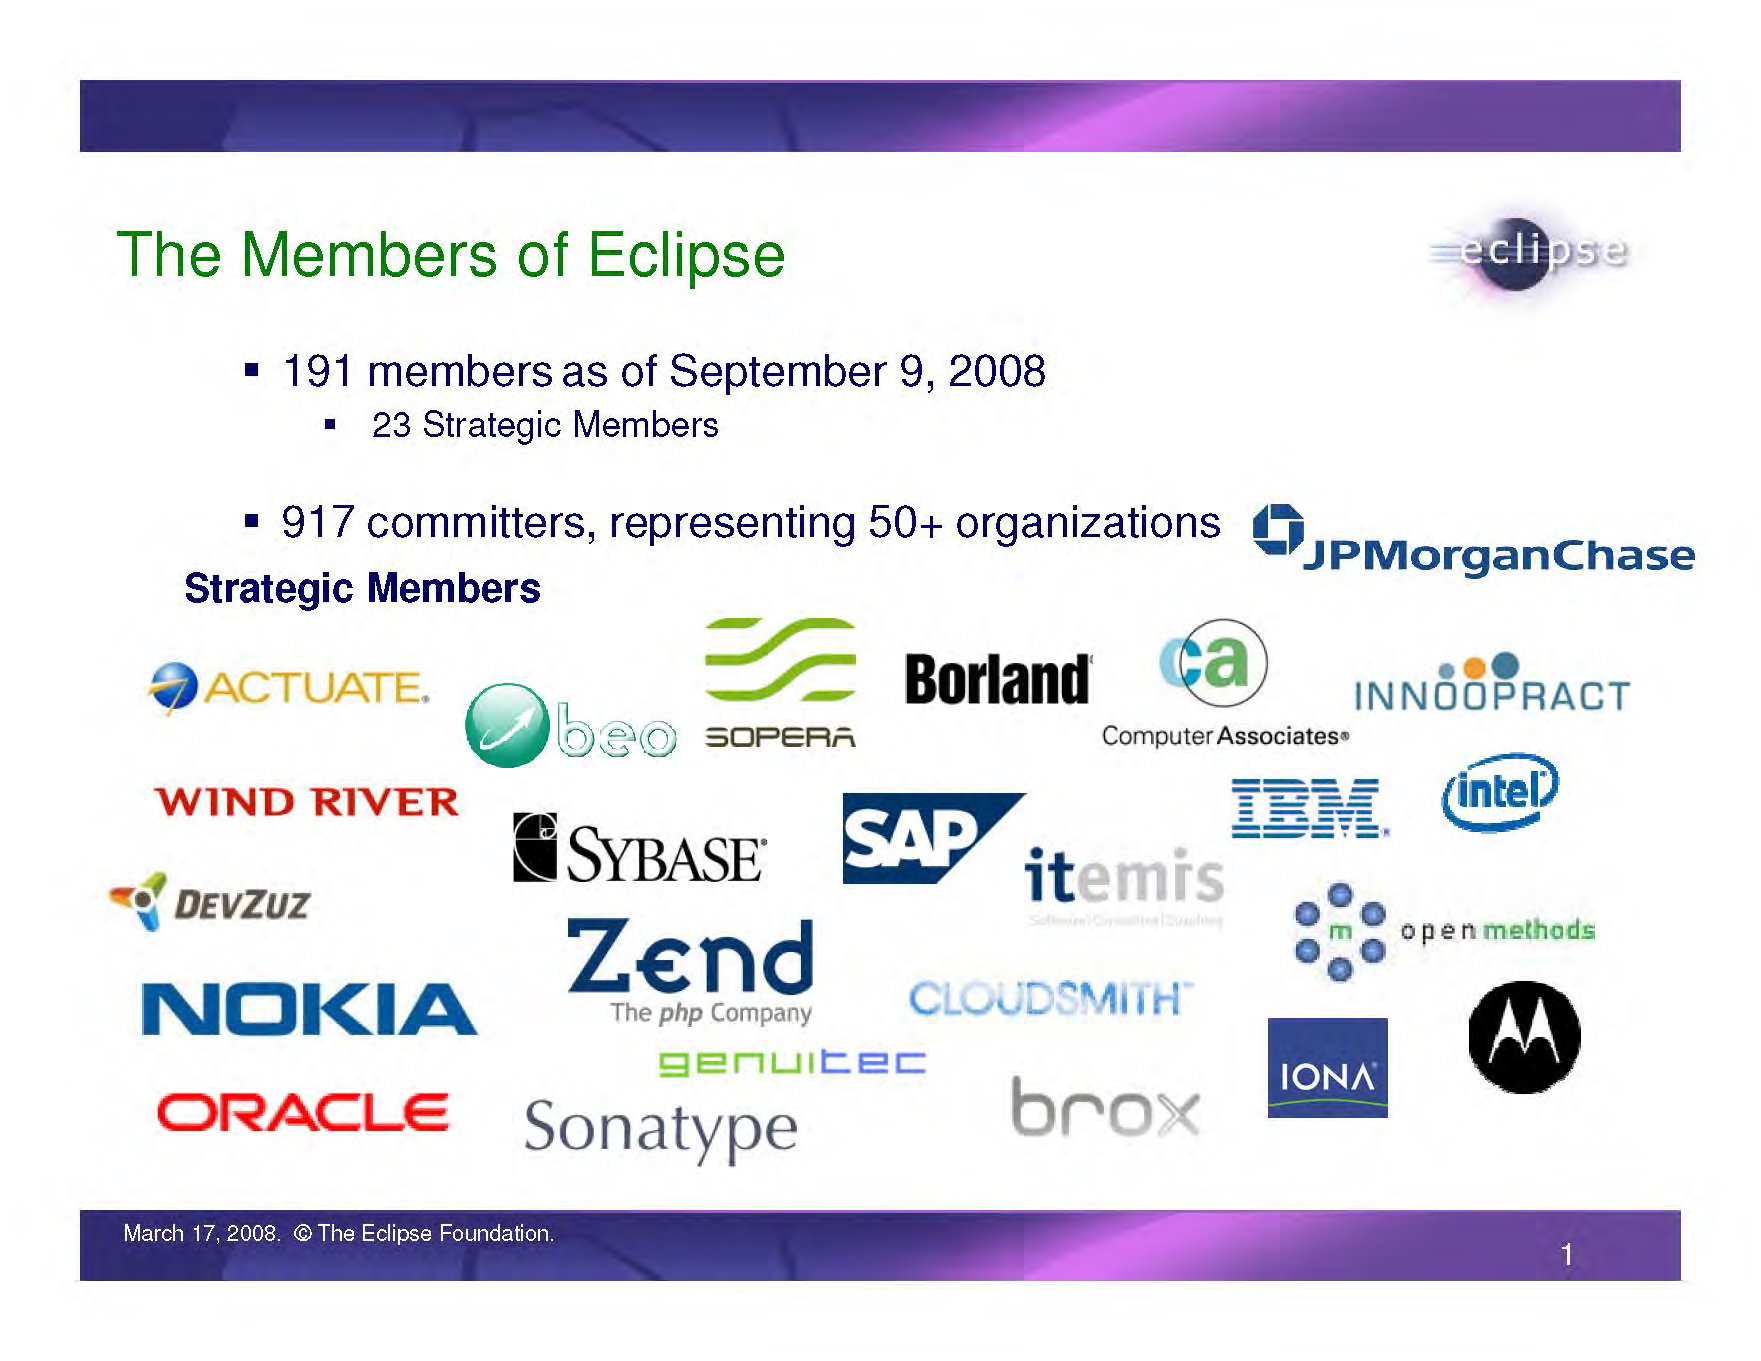 IBM Eclipse Foundation Membership logos, Page 1, as of Sep. 9, 2008 (Actuate, Beo, Borlan, Brox, Cloudsmith, Computer Associates, DevZuz, GenuiTec, IBM, Innoopract, Iona, Itemis, JPMorgan Chase, Motorola, Nokia, Open Methods, Oracle, SAP, Sonatype, SOPERA, Sybase, Wind River, Zend)